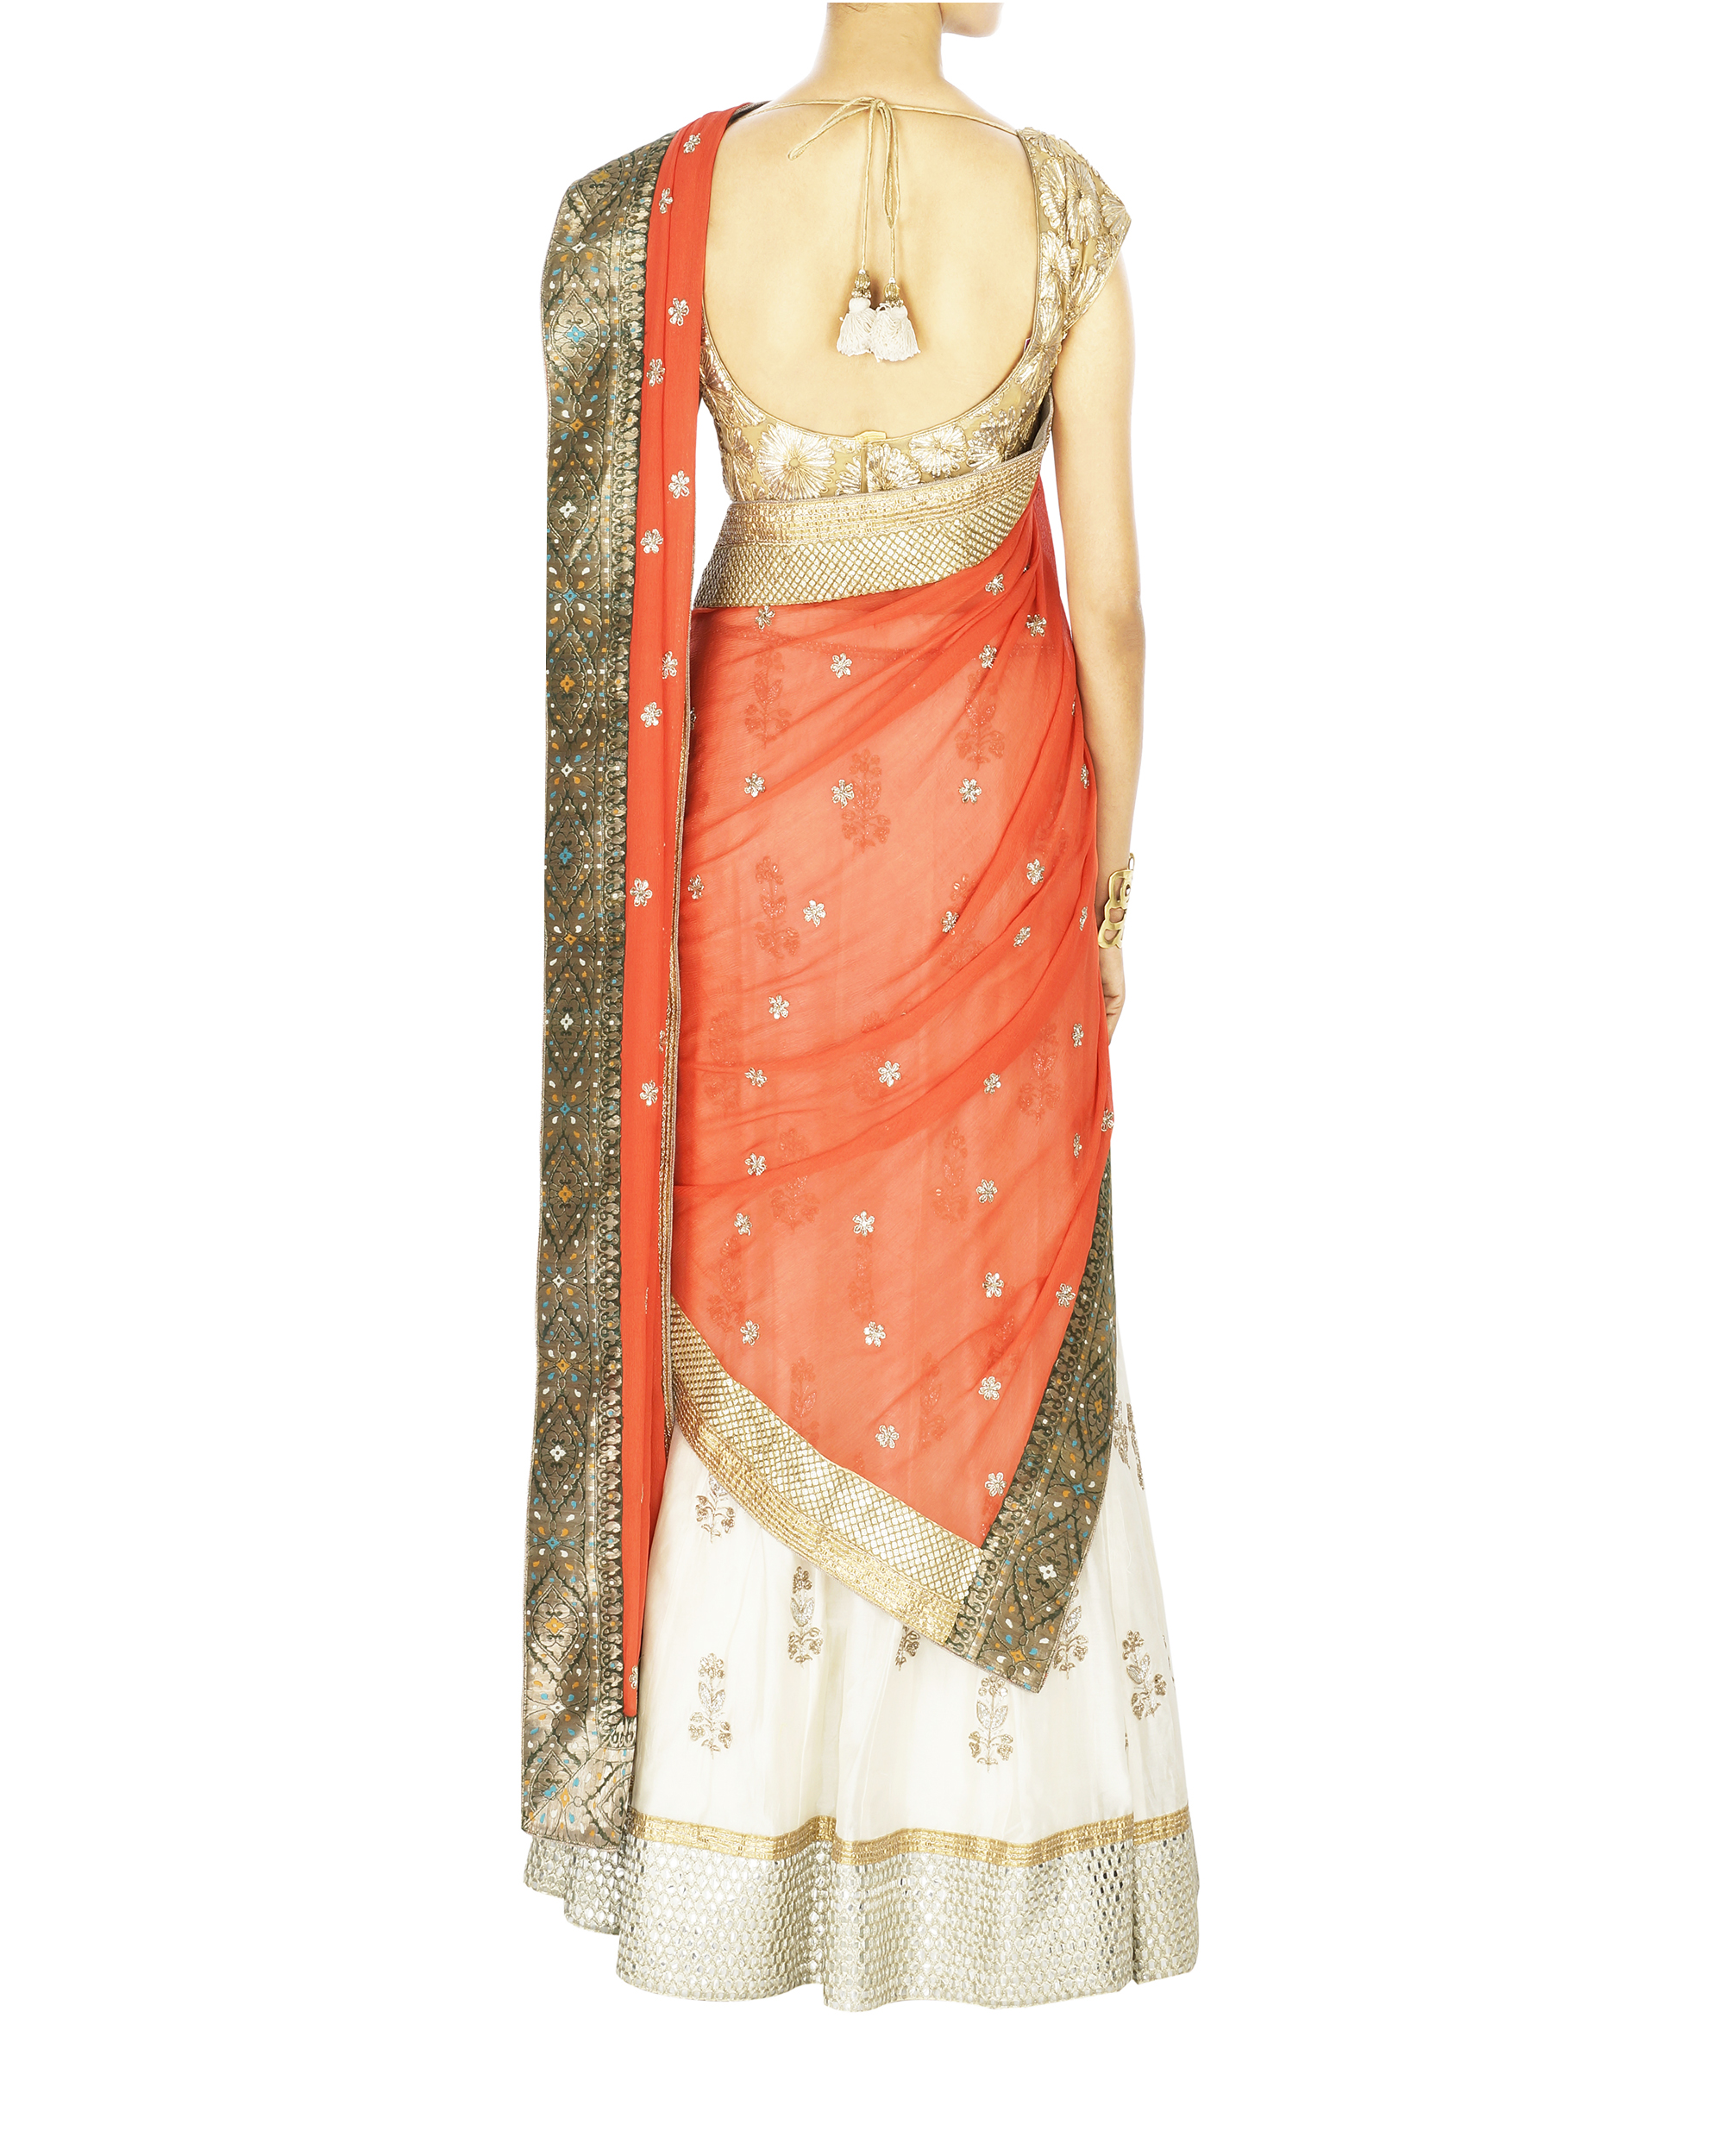 1e2f93b40f847c Offwhite lehanga with orange dupatta and golden blouse by Aametrine ...